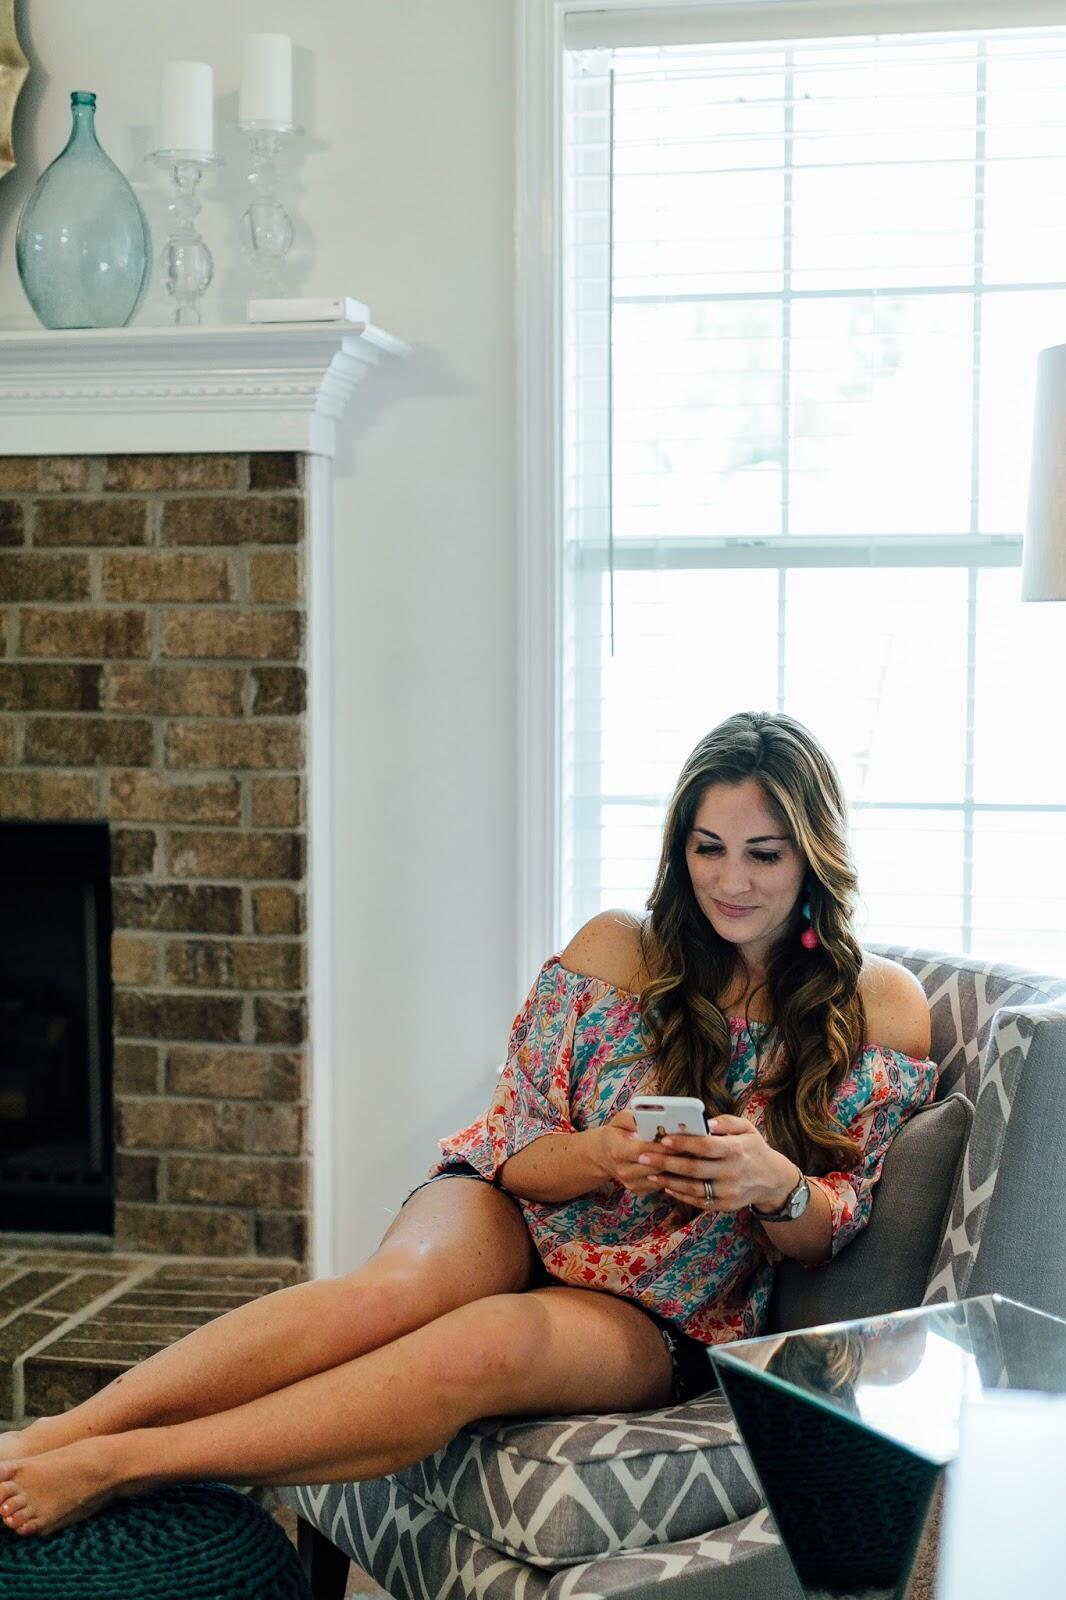 The Home Security System to Give You and Your Family Peace of Mind by lifestyle blogger Laura of Walking in Memphis in High Heels